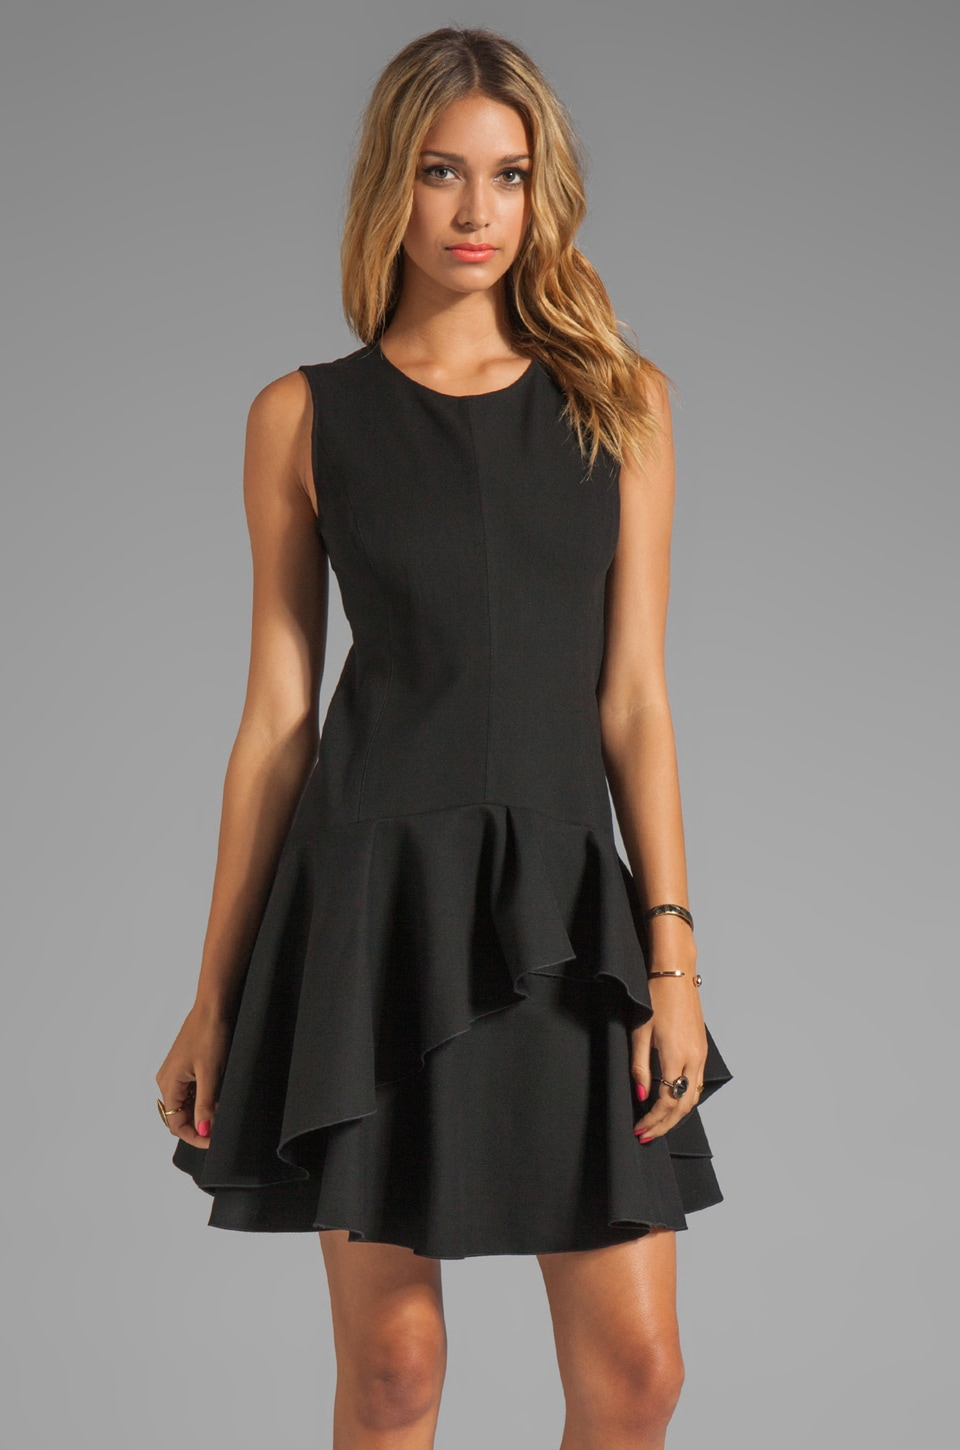 Halston Heritage Sleeveless Scoop Neck Ponte Dress in Black